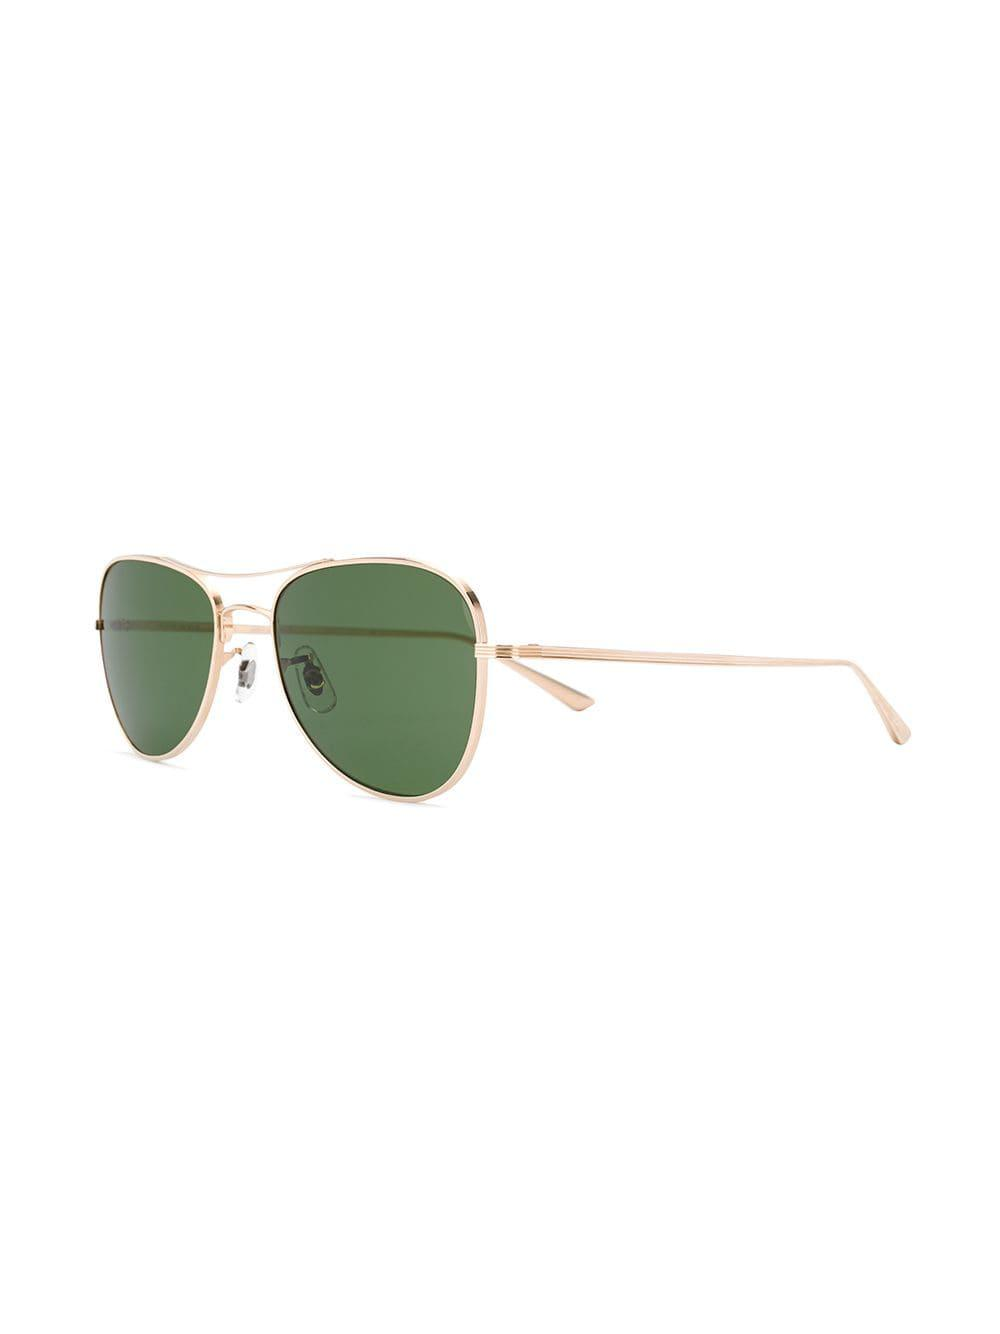 0db5016dc4 Oliver Peoples - Metallic Executive Suite Sunglasses - Lyst. View fullscreen